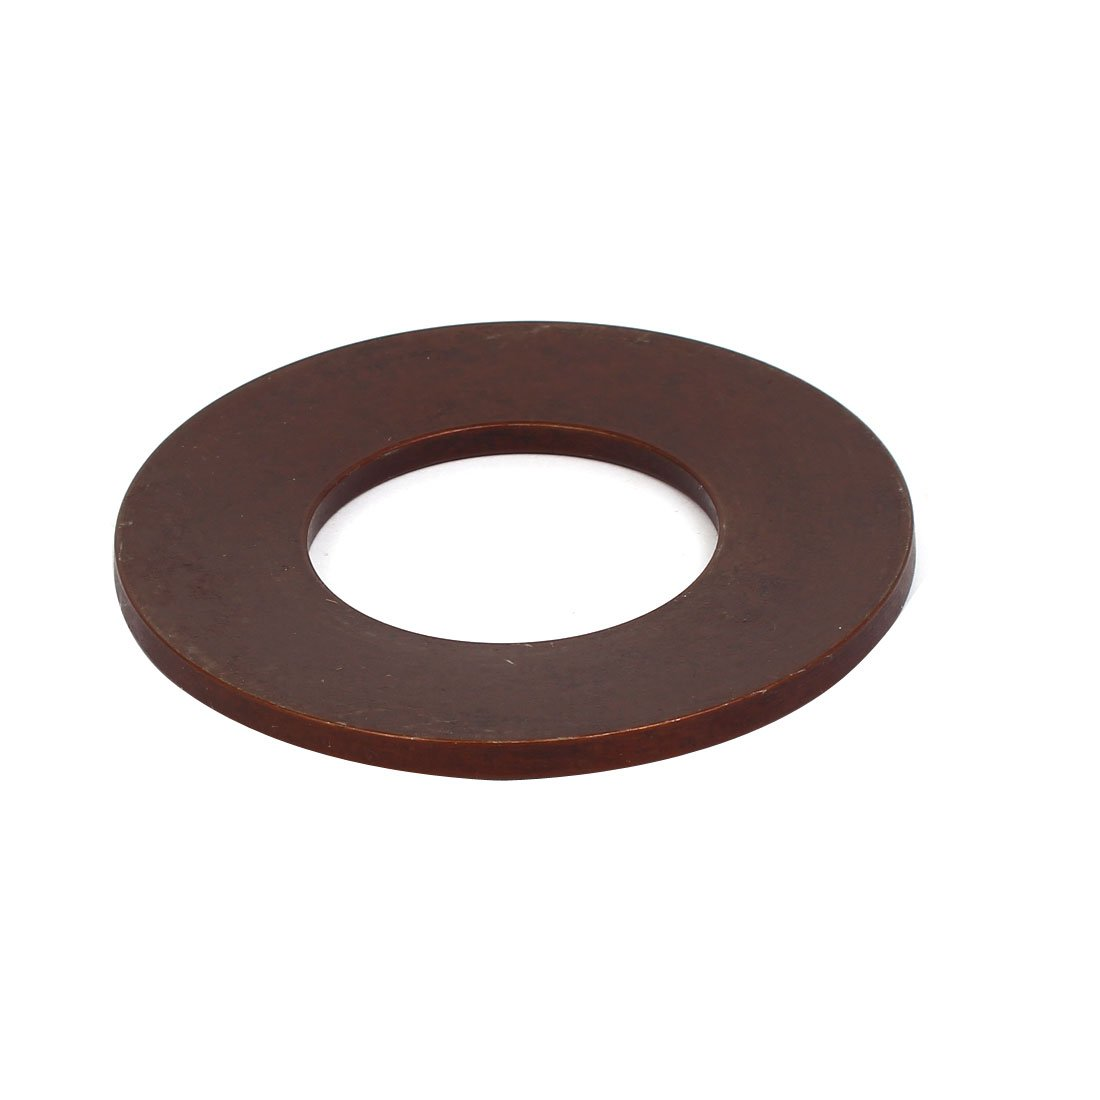 uxcell 112mm Outer Dia 57mm Inner Diameter 6mm Thickness Belleville Spring Washer